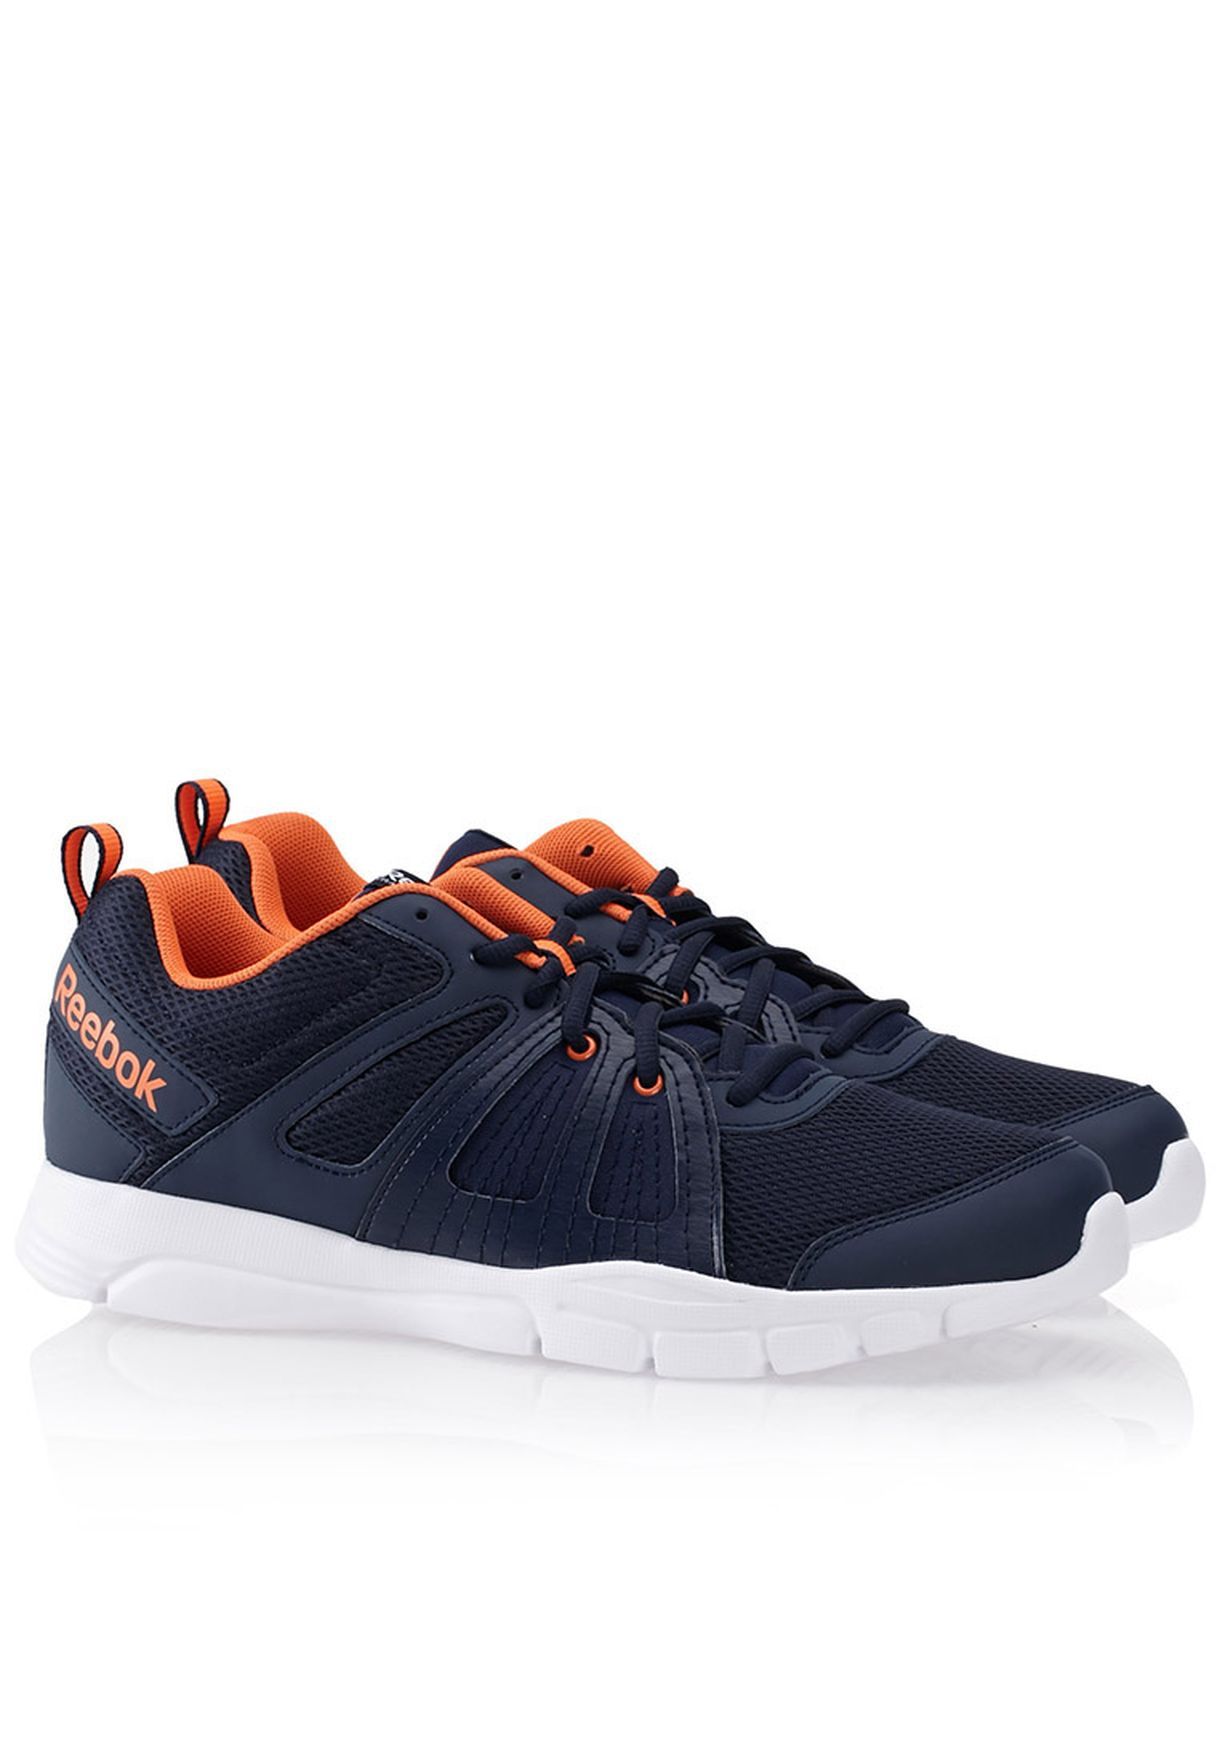 625d72ef7d9eac Shop Reebok navy Trainfusion RS 4.0 M45018 for Men in Qatar - RE019SH95OKA